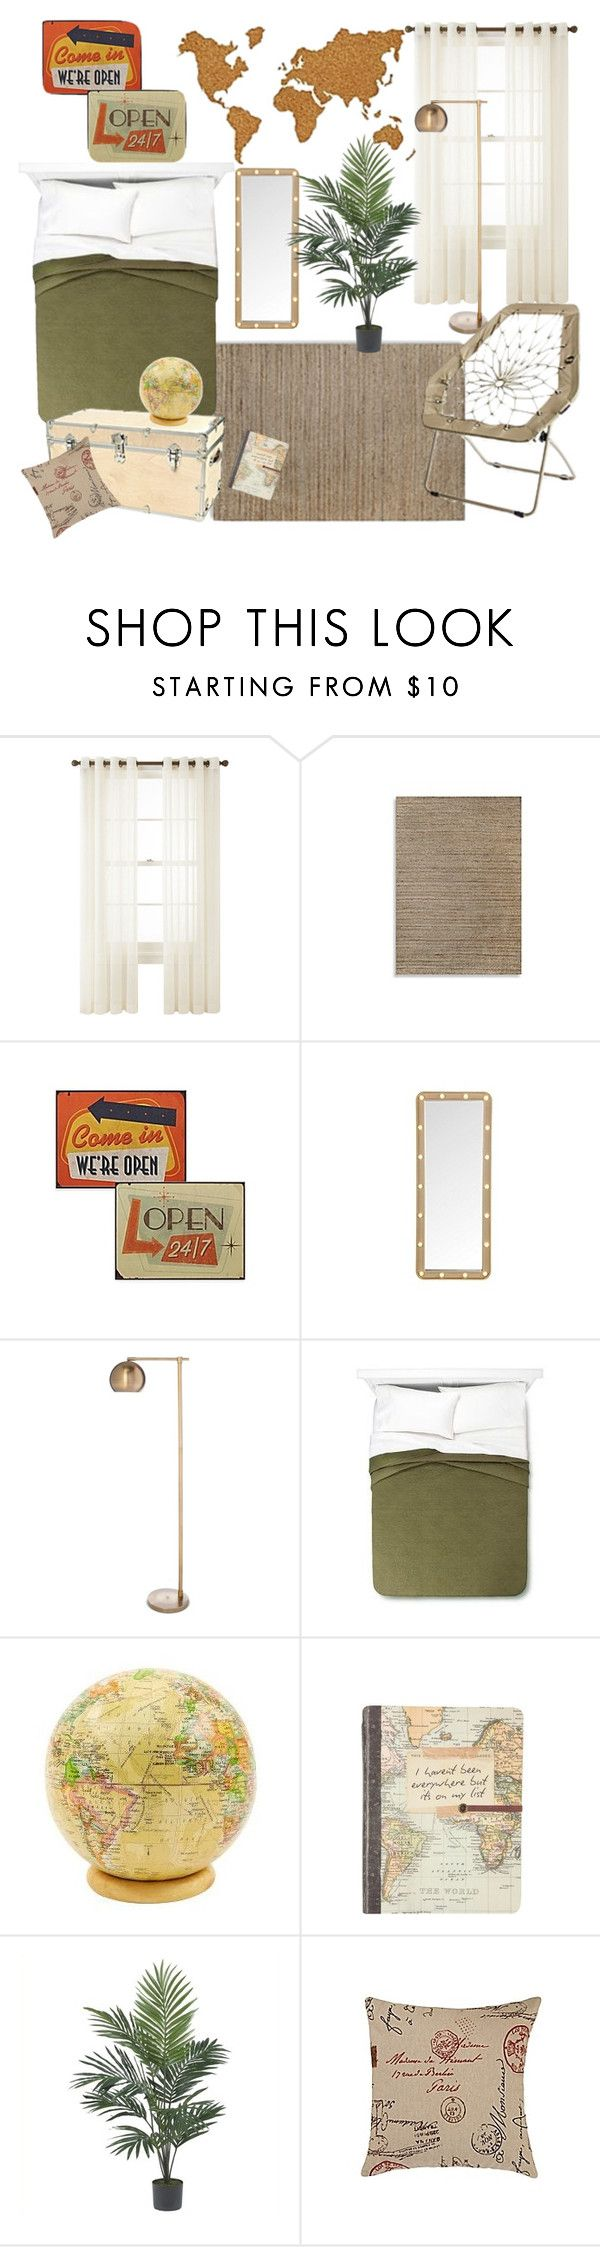 Threshold home decor shop for threshold home decor on polyvore -  Themed Dorm Travel By Bncollege On Polyvore Featuring Interior Interiors Interior